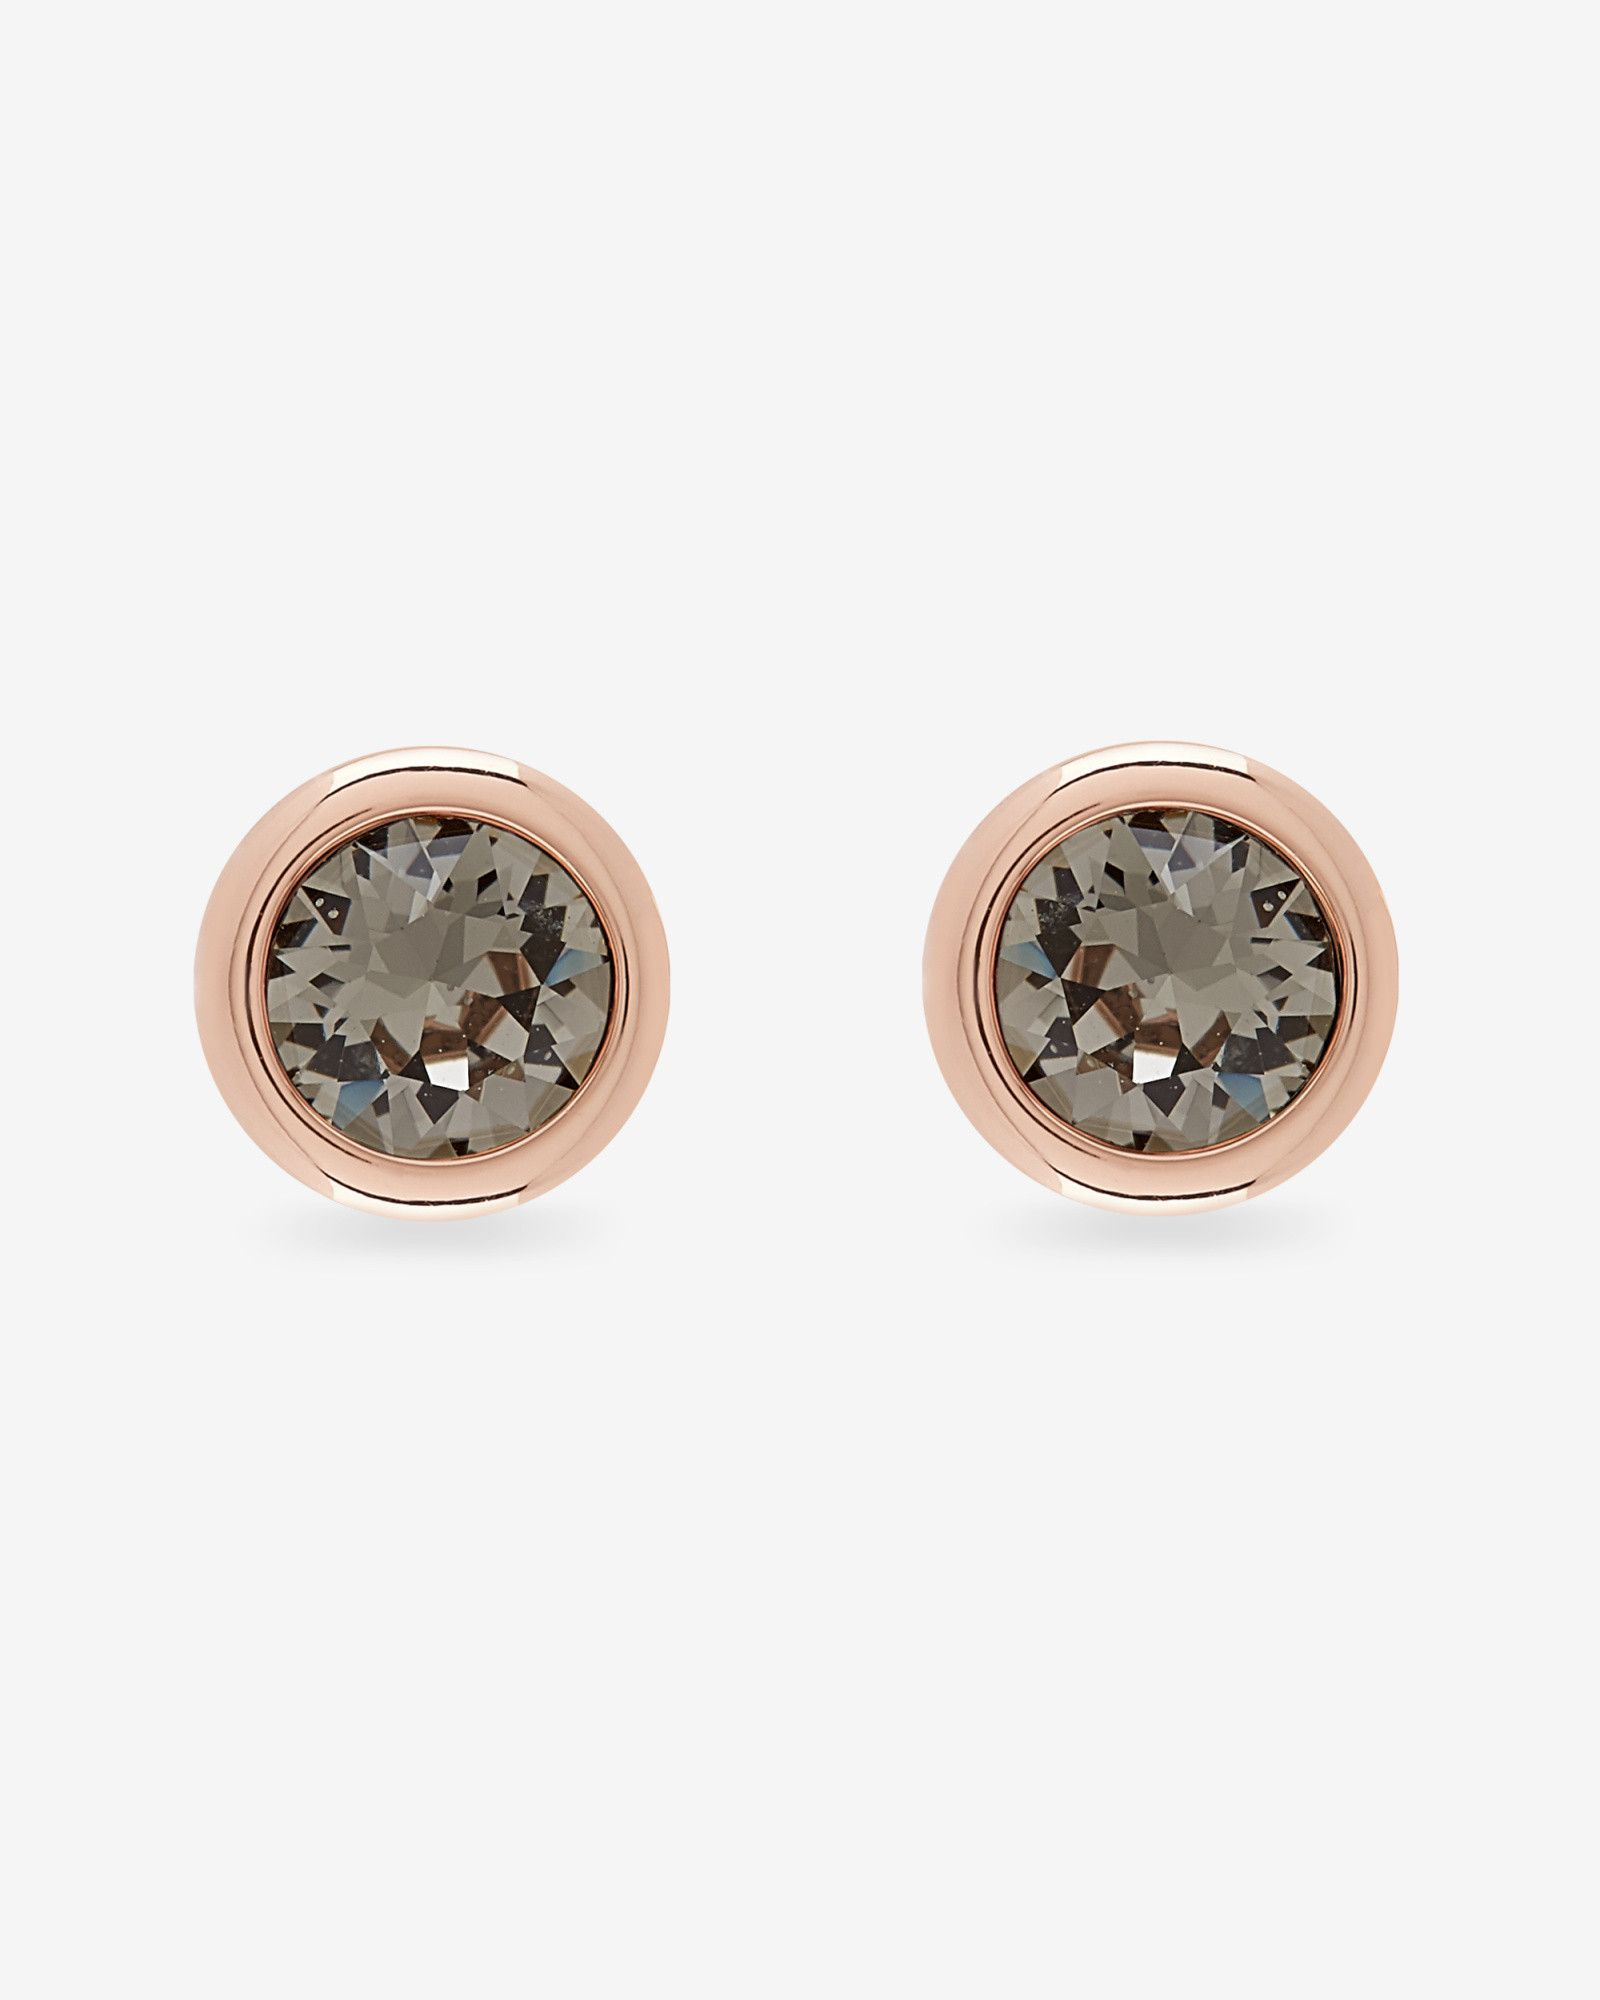 richard disc jewellery starburst stud earring black earrings jon zoom crystal